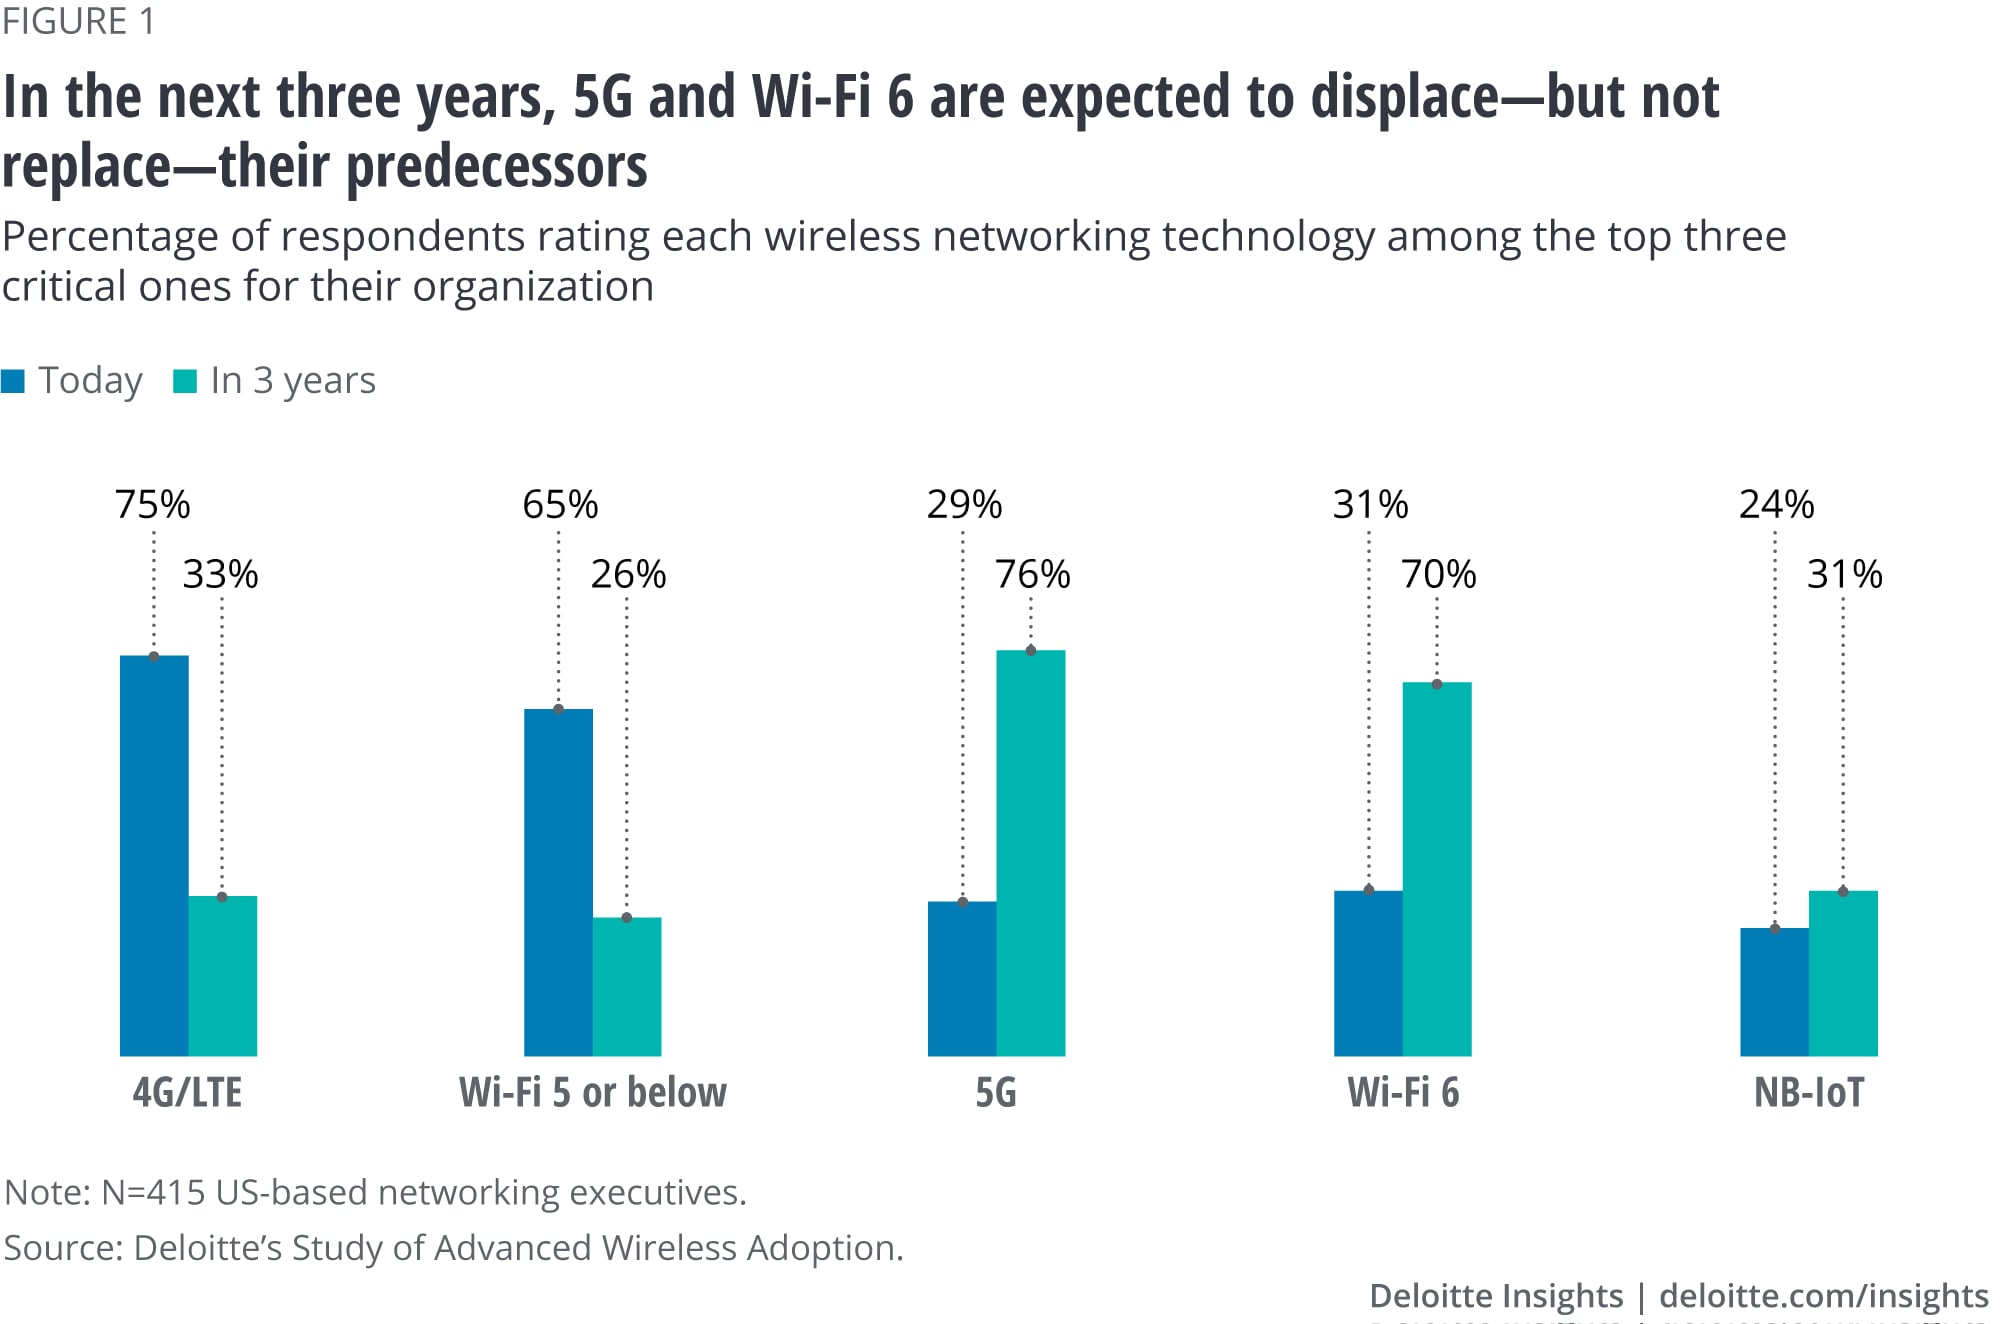 In the next three years, 5G and Wi-Fi 6 are expected to displace—but not replace—their predecessors